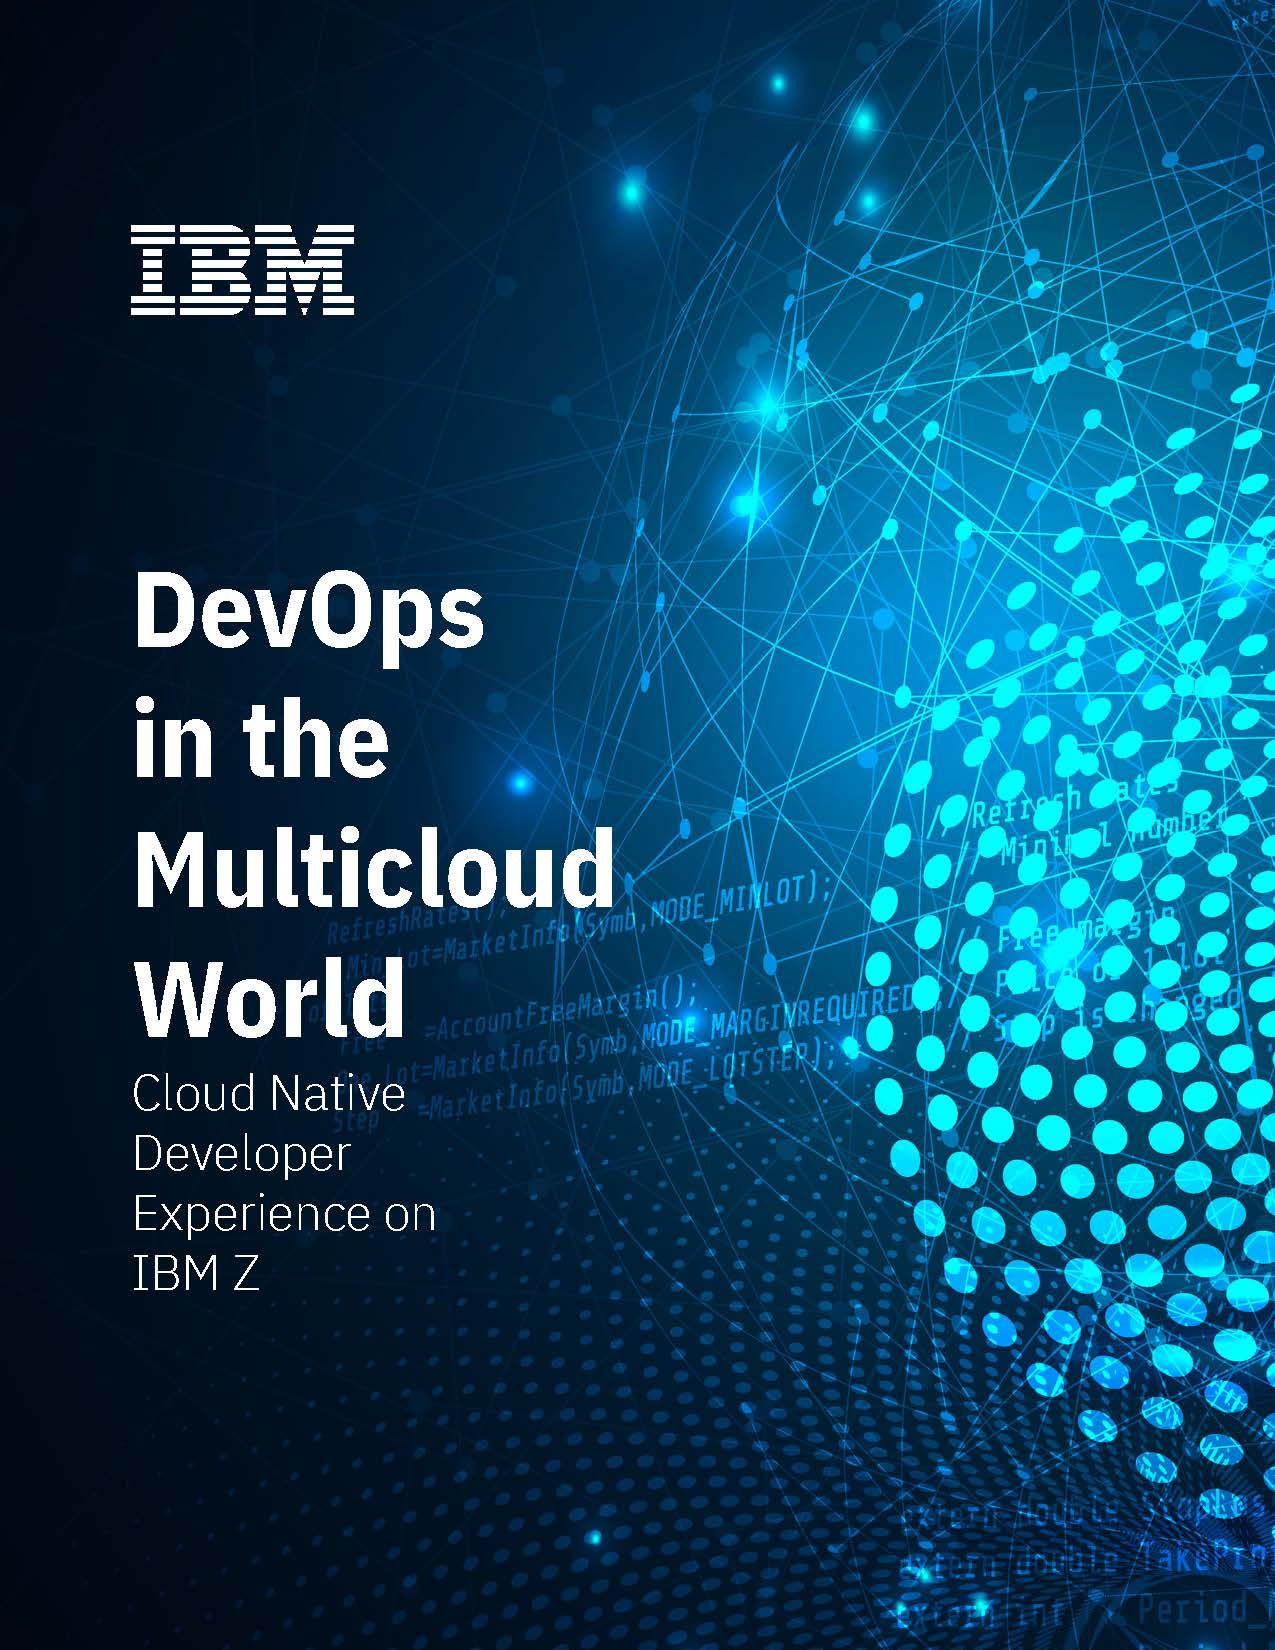 DevOps in the Multicloud World Cloud Native Developer Experience on IBM Z